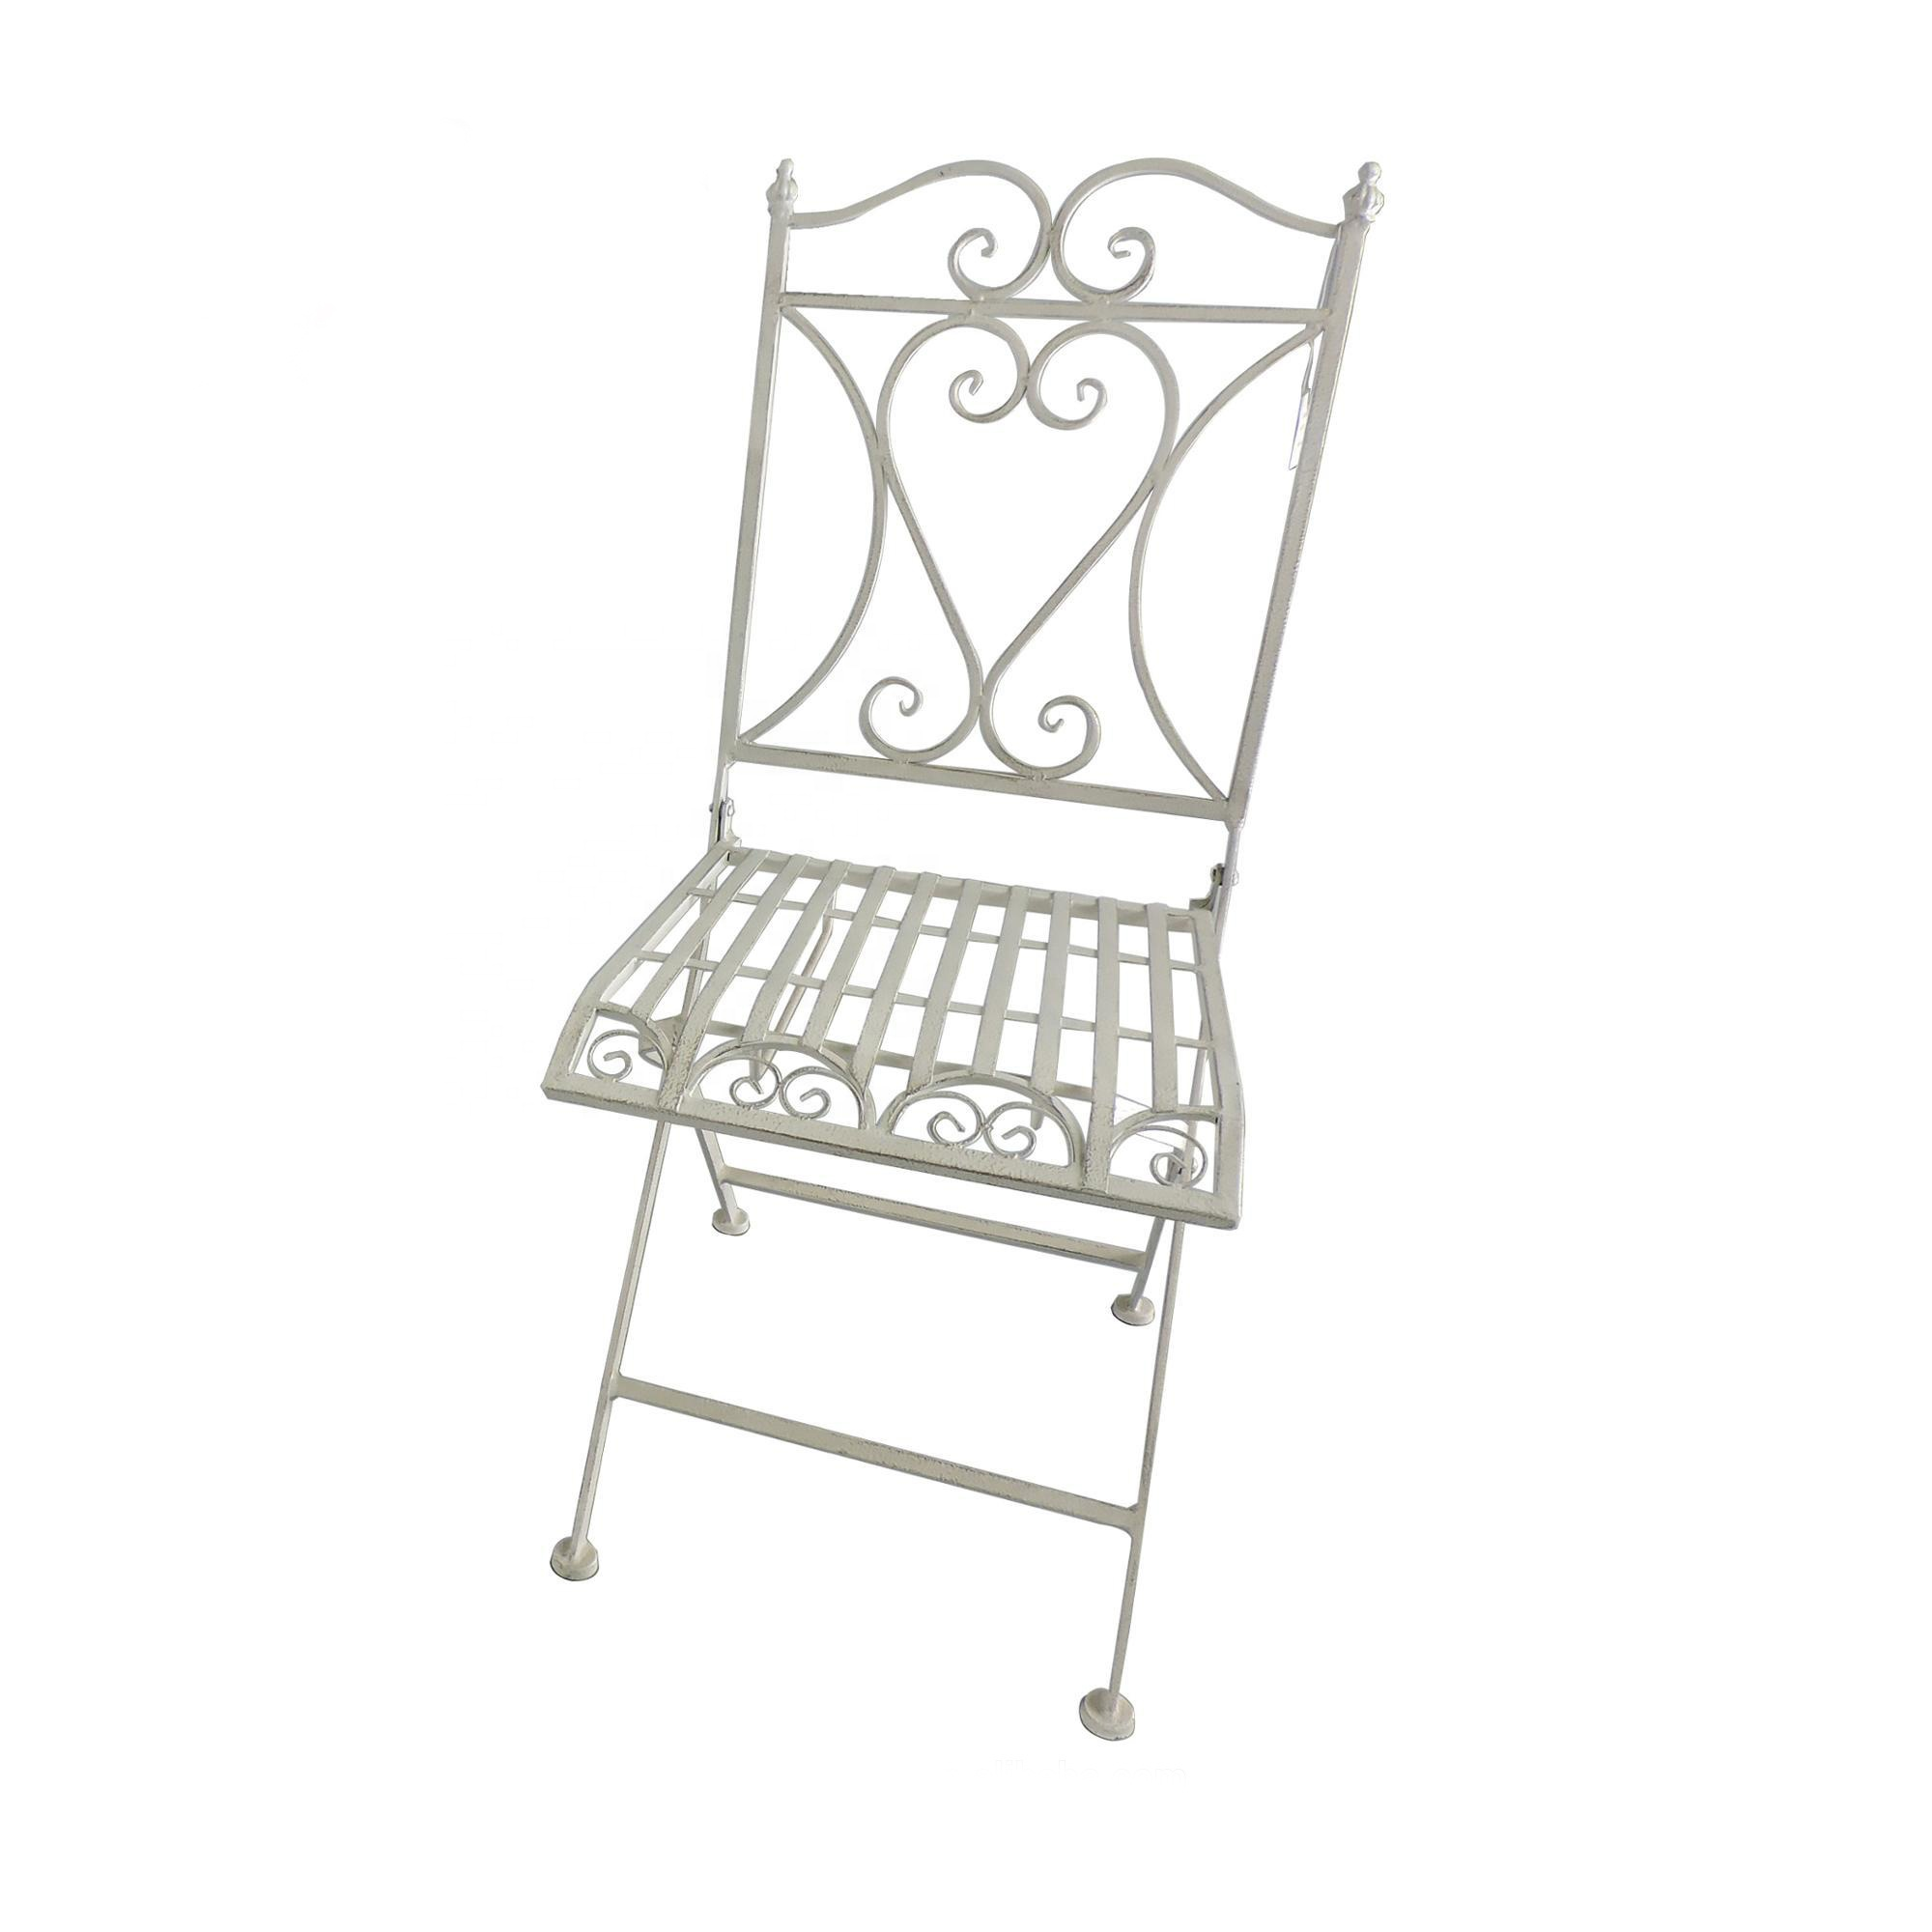 Wondrous Durable Garden Antique Metal Folding Chairs Buy Garden Chairs Metal Antique Chair Metal Folding Chairs Product On Alibaba Com Machost Co Dining Chair Design Ideas Machostcouk